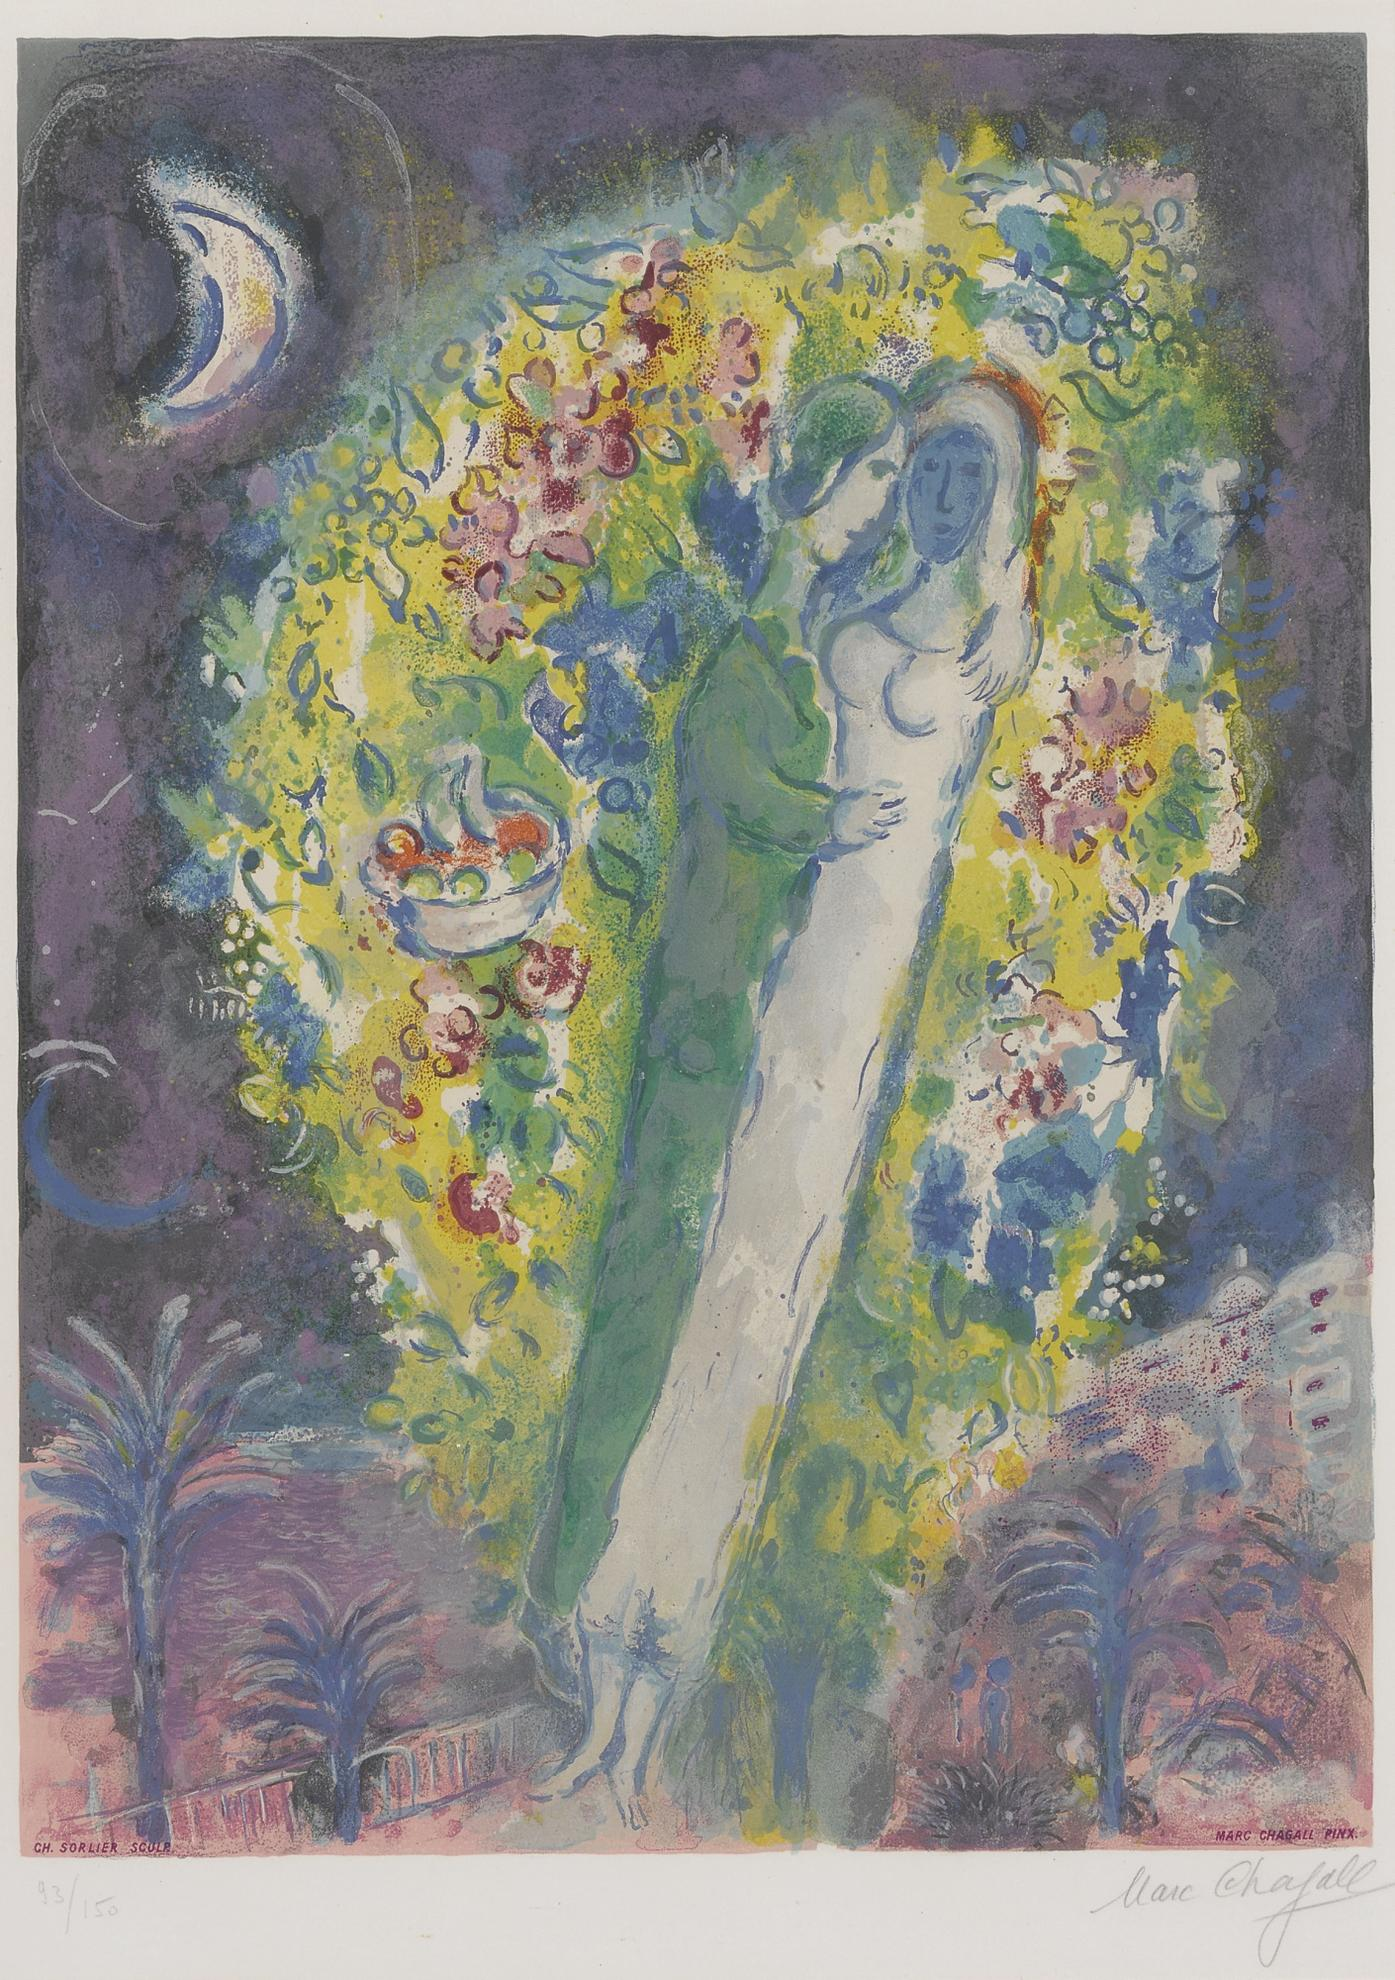 Charles Sorlier After Marc Chagall - Couple In Mimosa (M. Cs 32)-1967